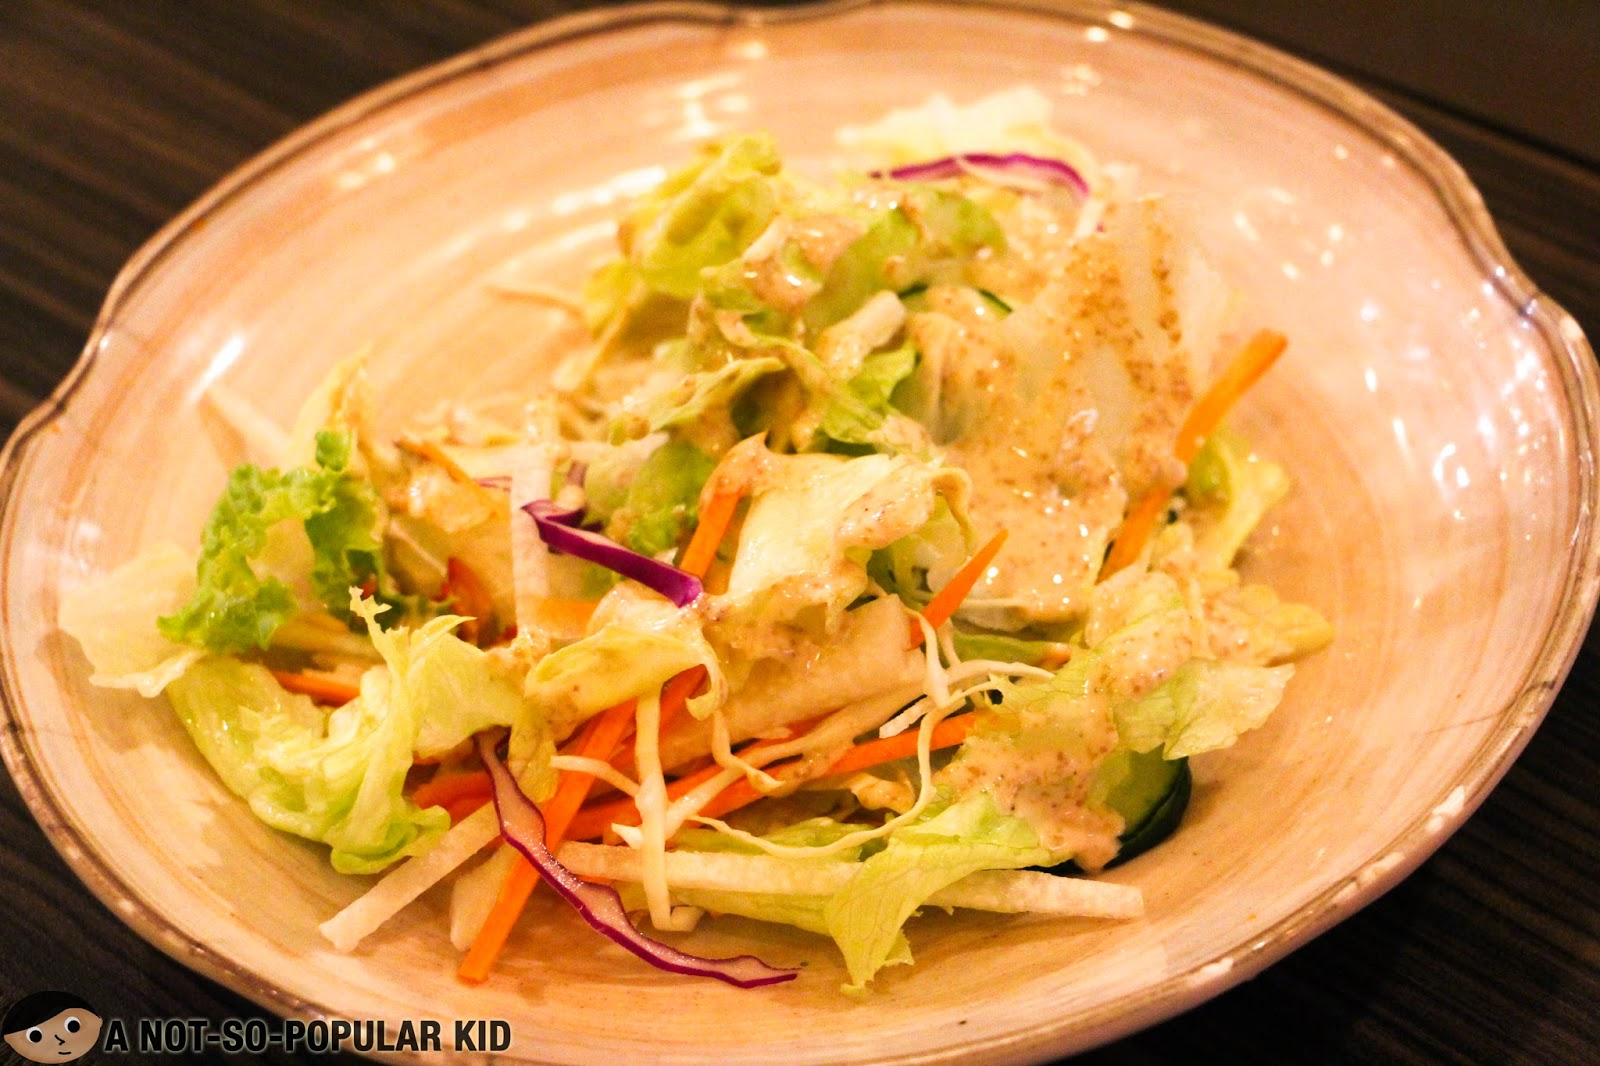 Fresh salad sides with sesame dressing of Genji-M